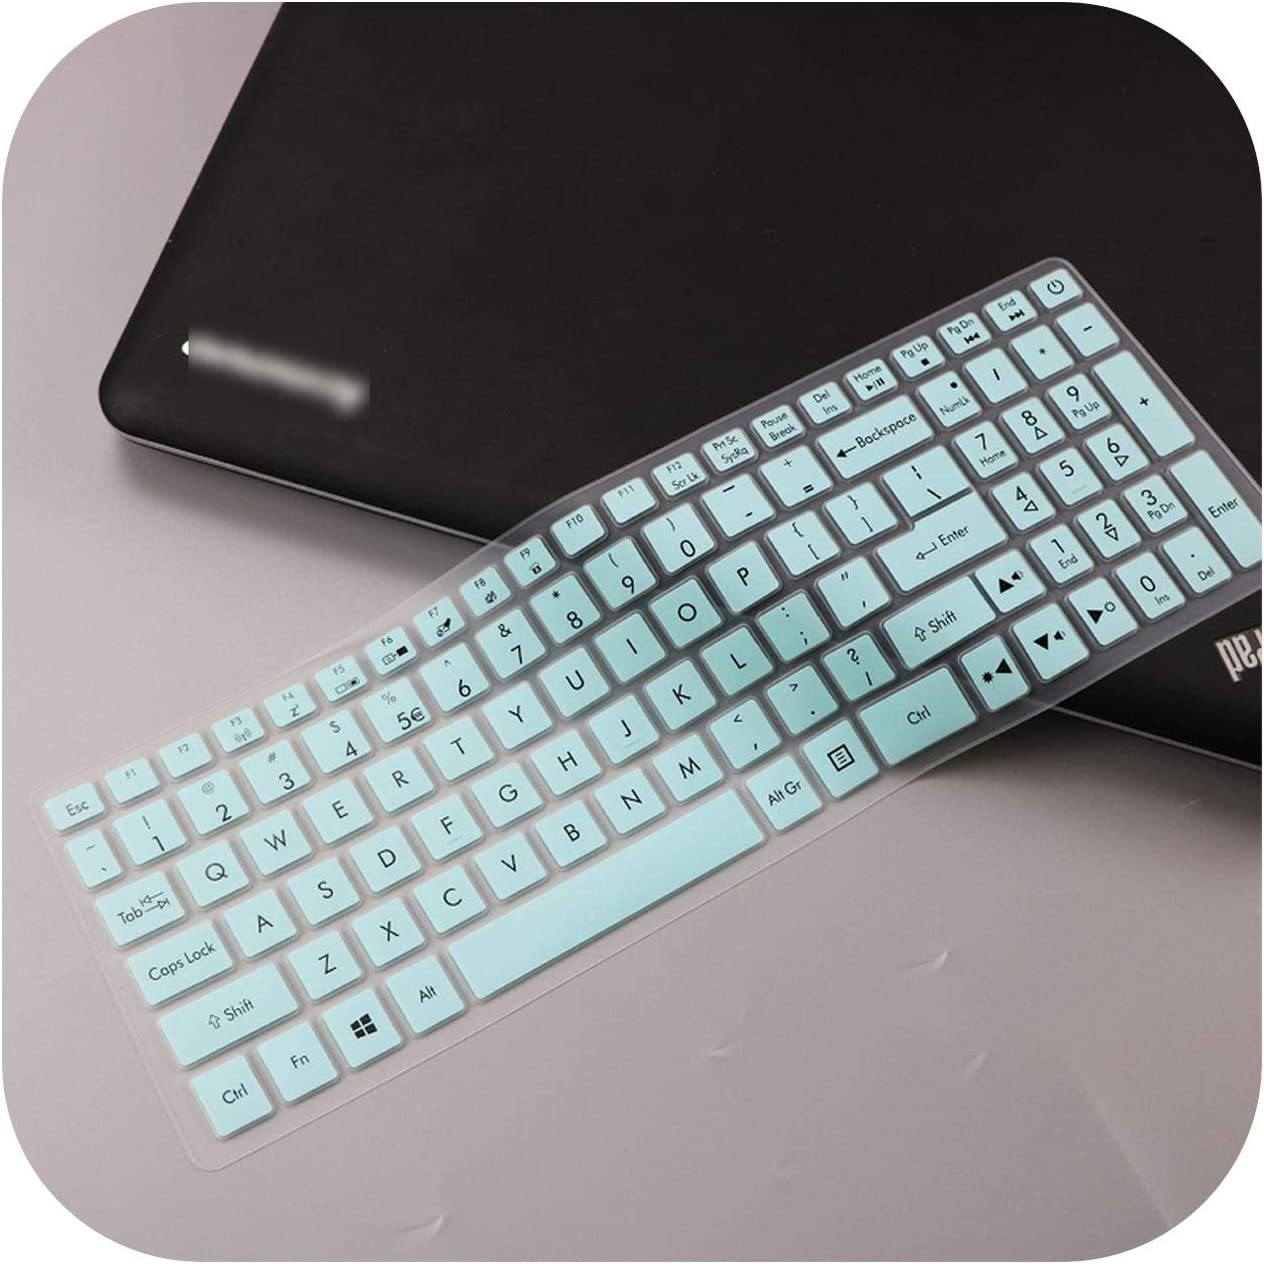 for Acer Predator Helios 300 15.6 17.3 G3 571 G3 572 PH315 51 PH317 52 VX5 591G VN7 793G Laptop Keyboard Cover Skin Protector-White